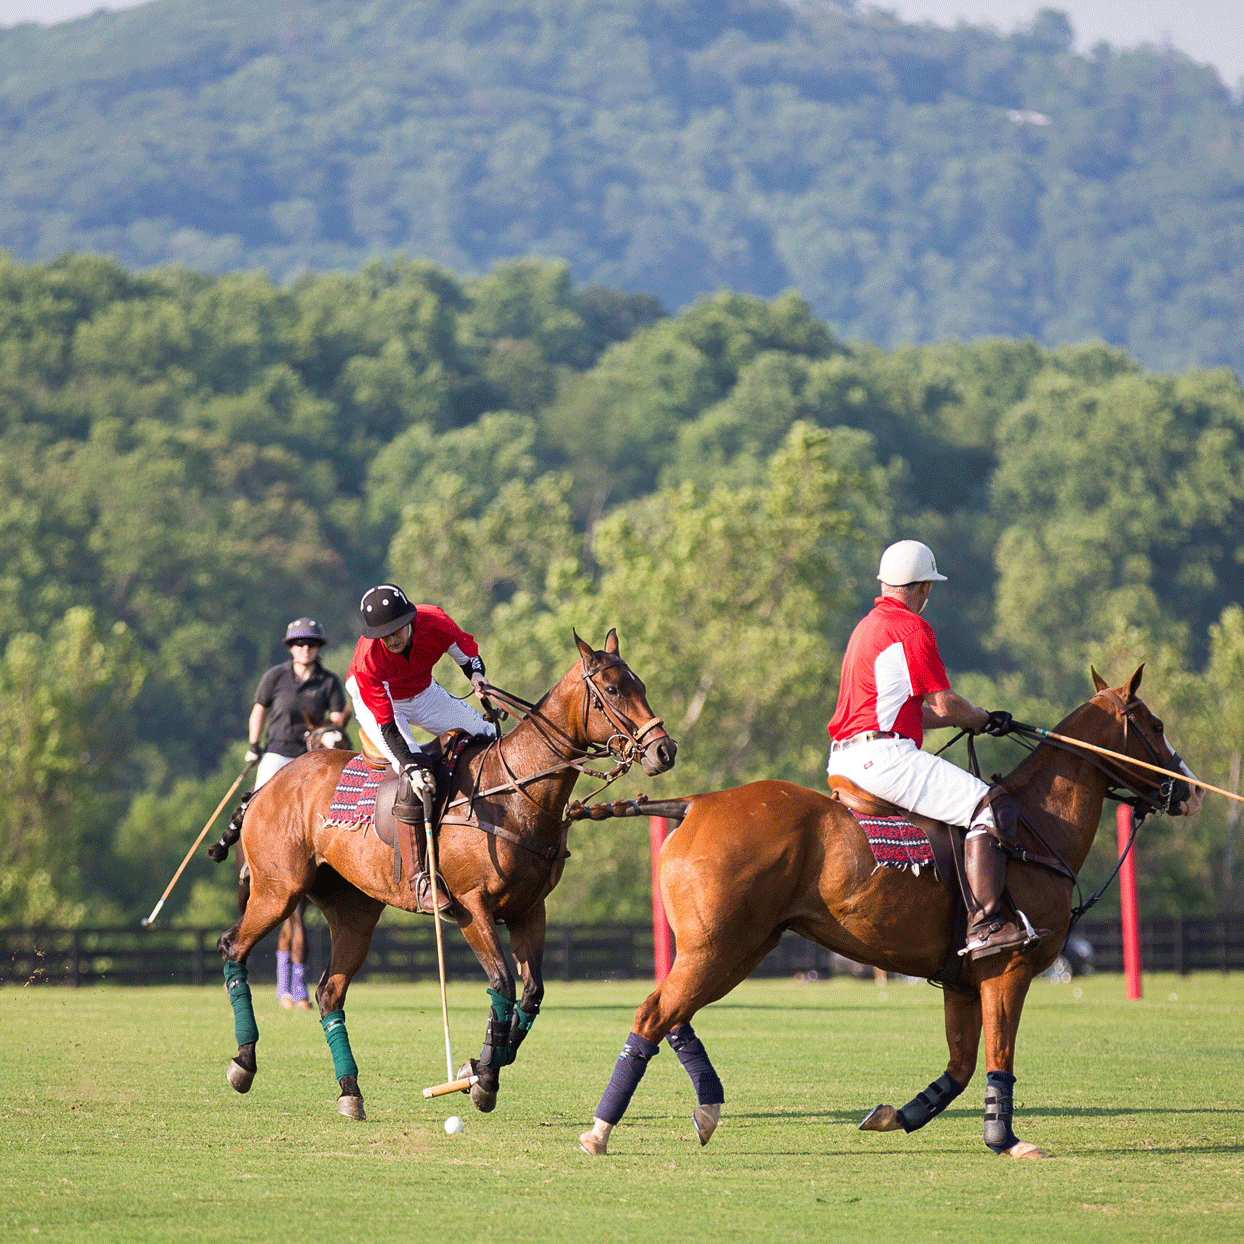 People riding horses playing polo